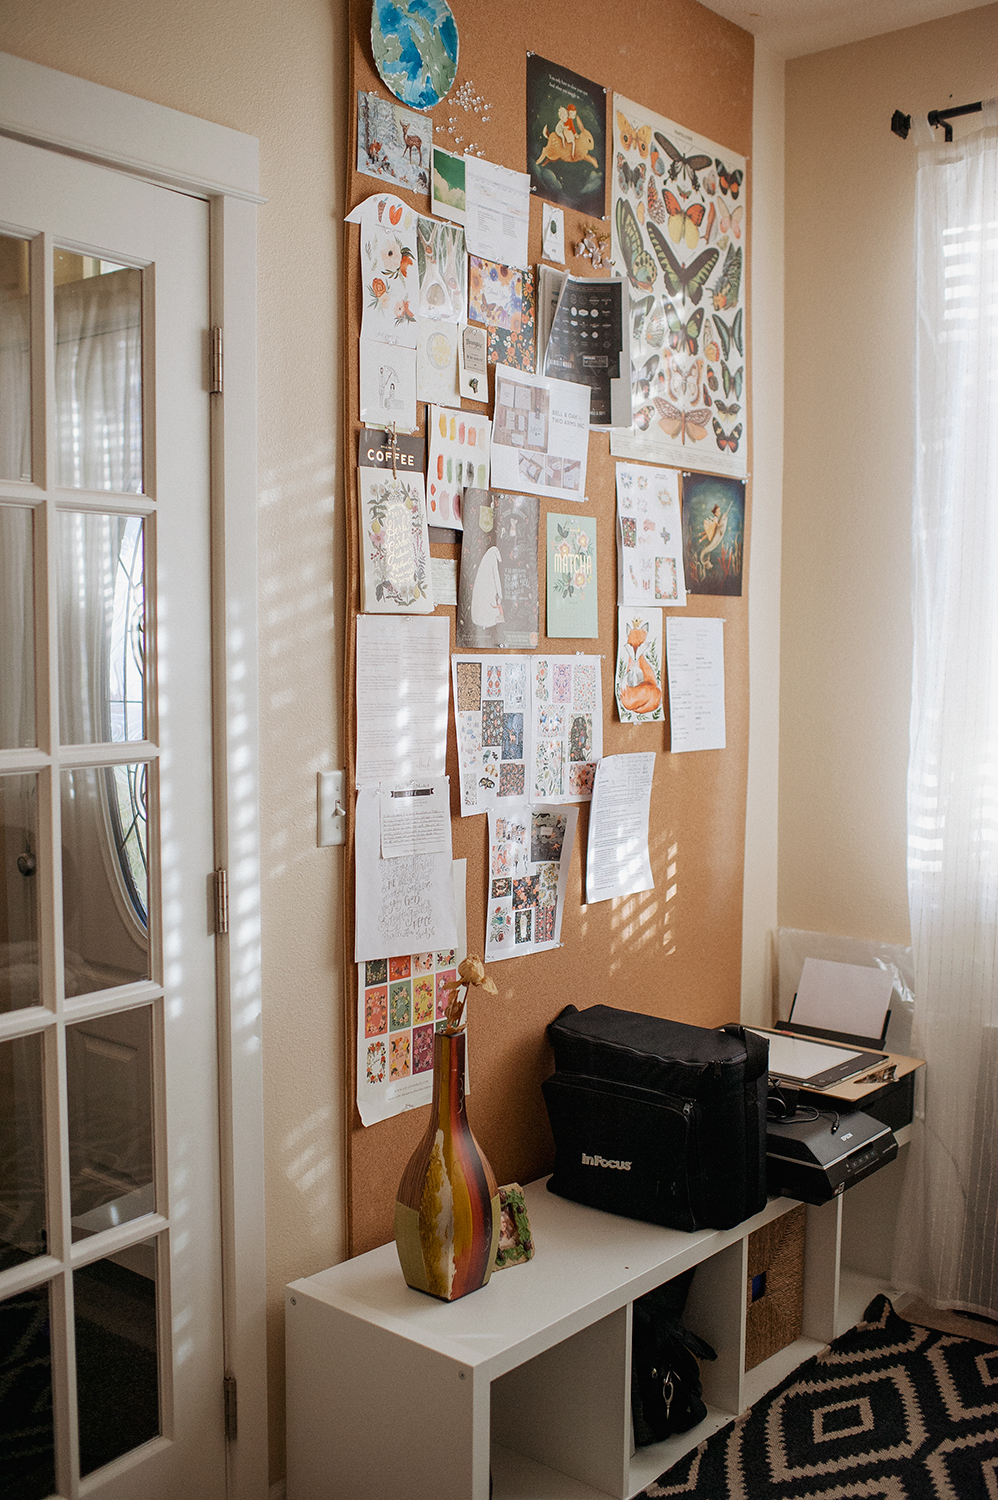 How to Install your Own Cork Board Wall Area — Elena Wilken